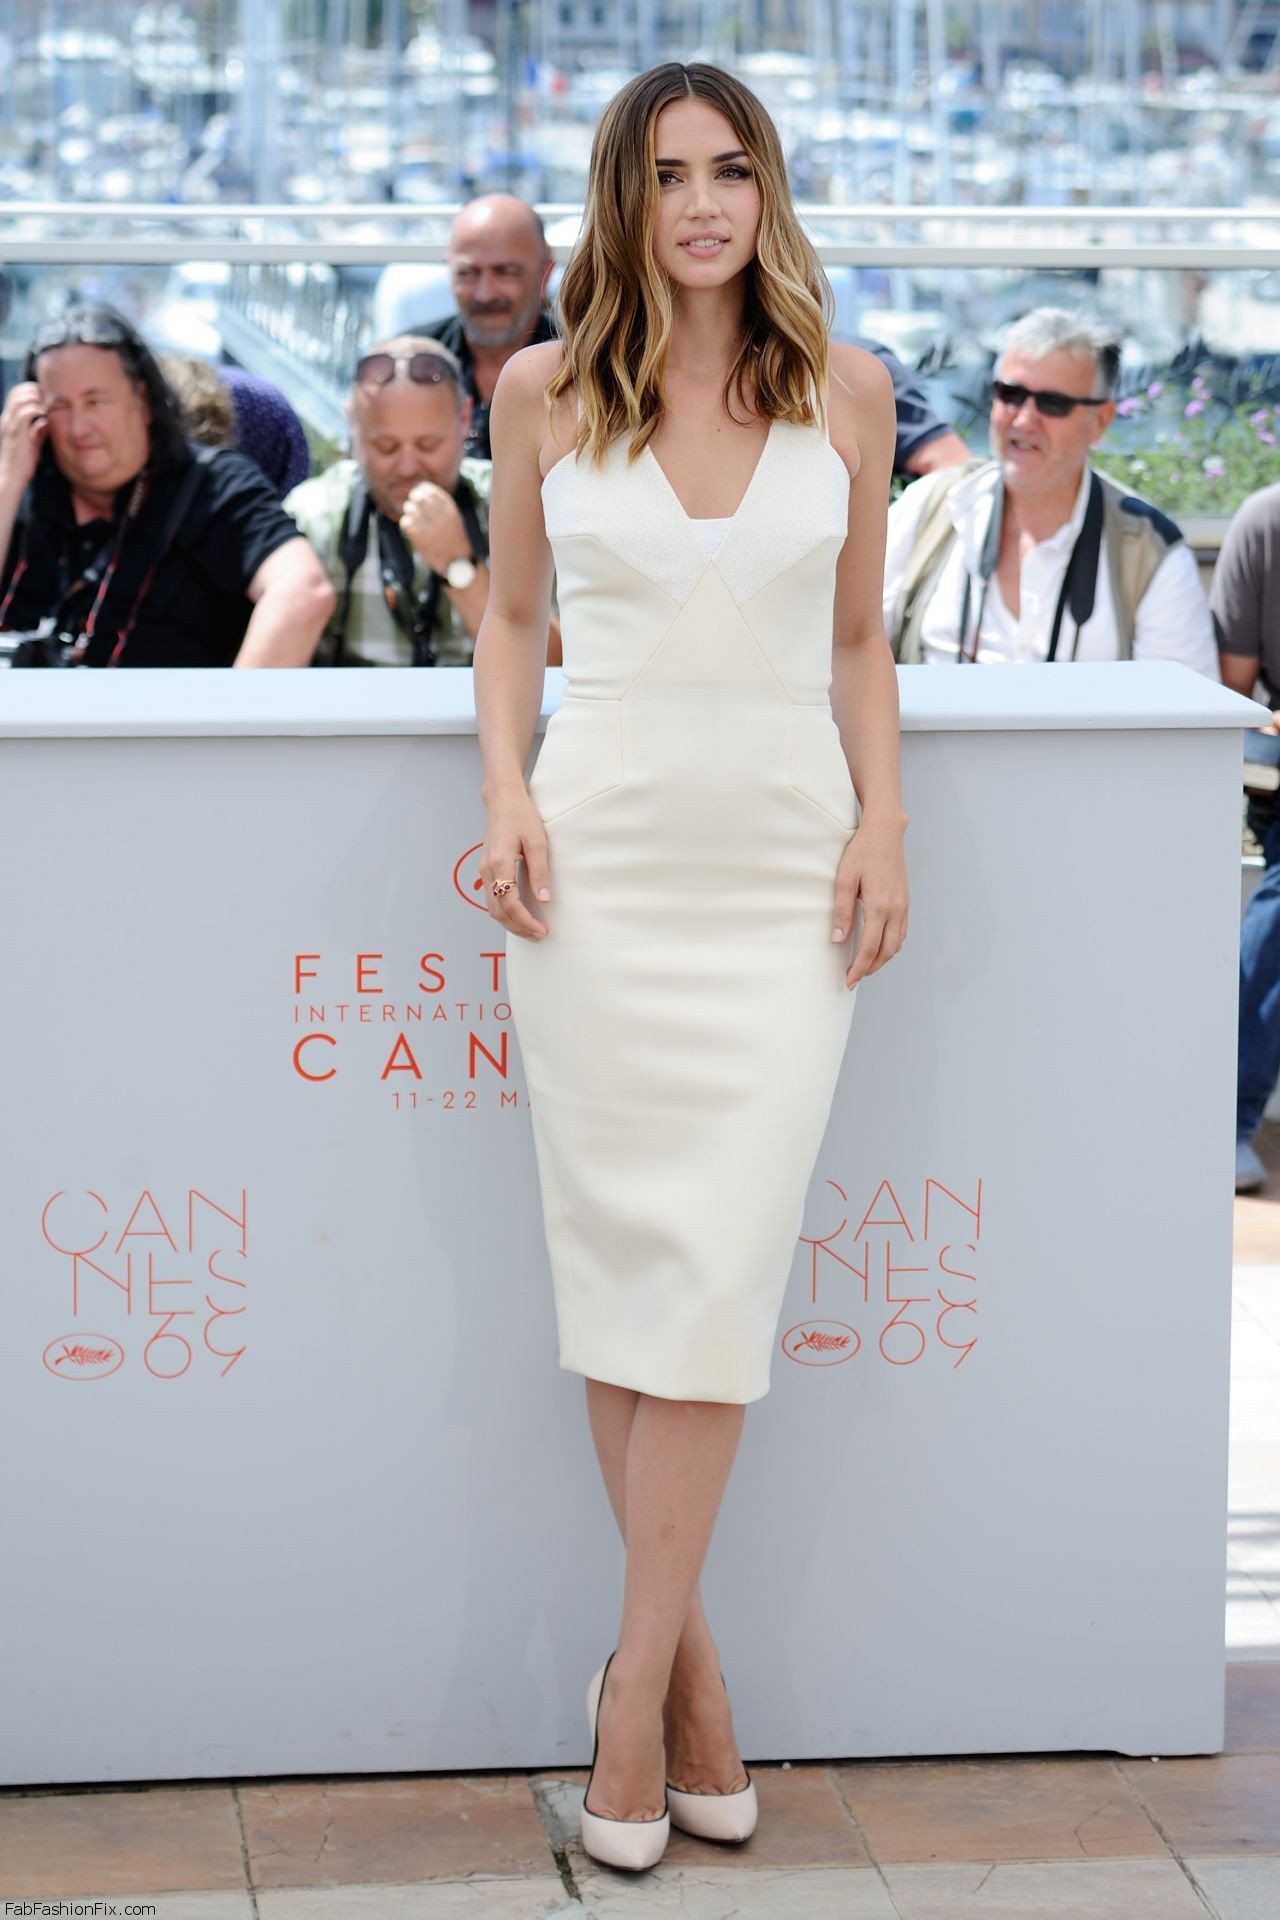 ana-de-armas-hands-of-stone-photocall-at-cannes-film-festival-5-16-2016-15